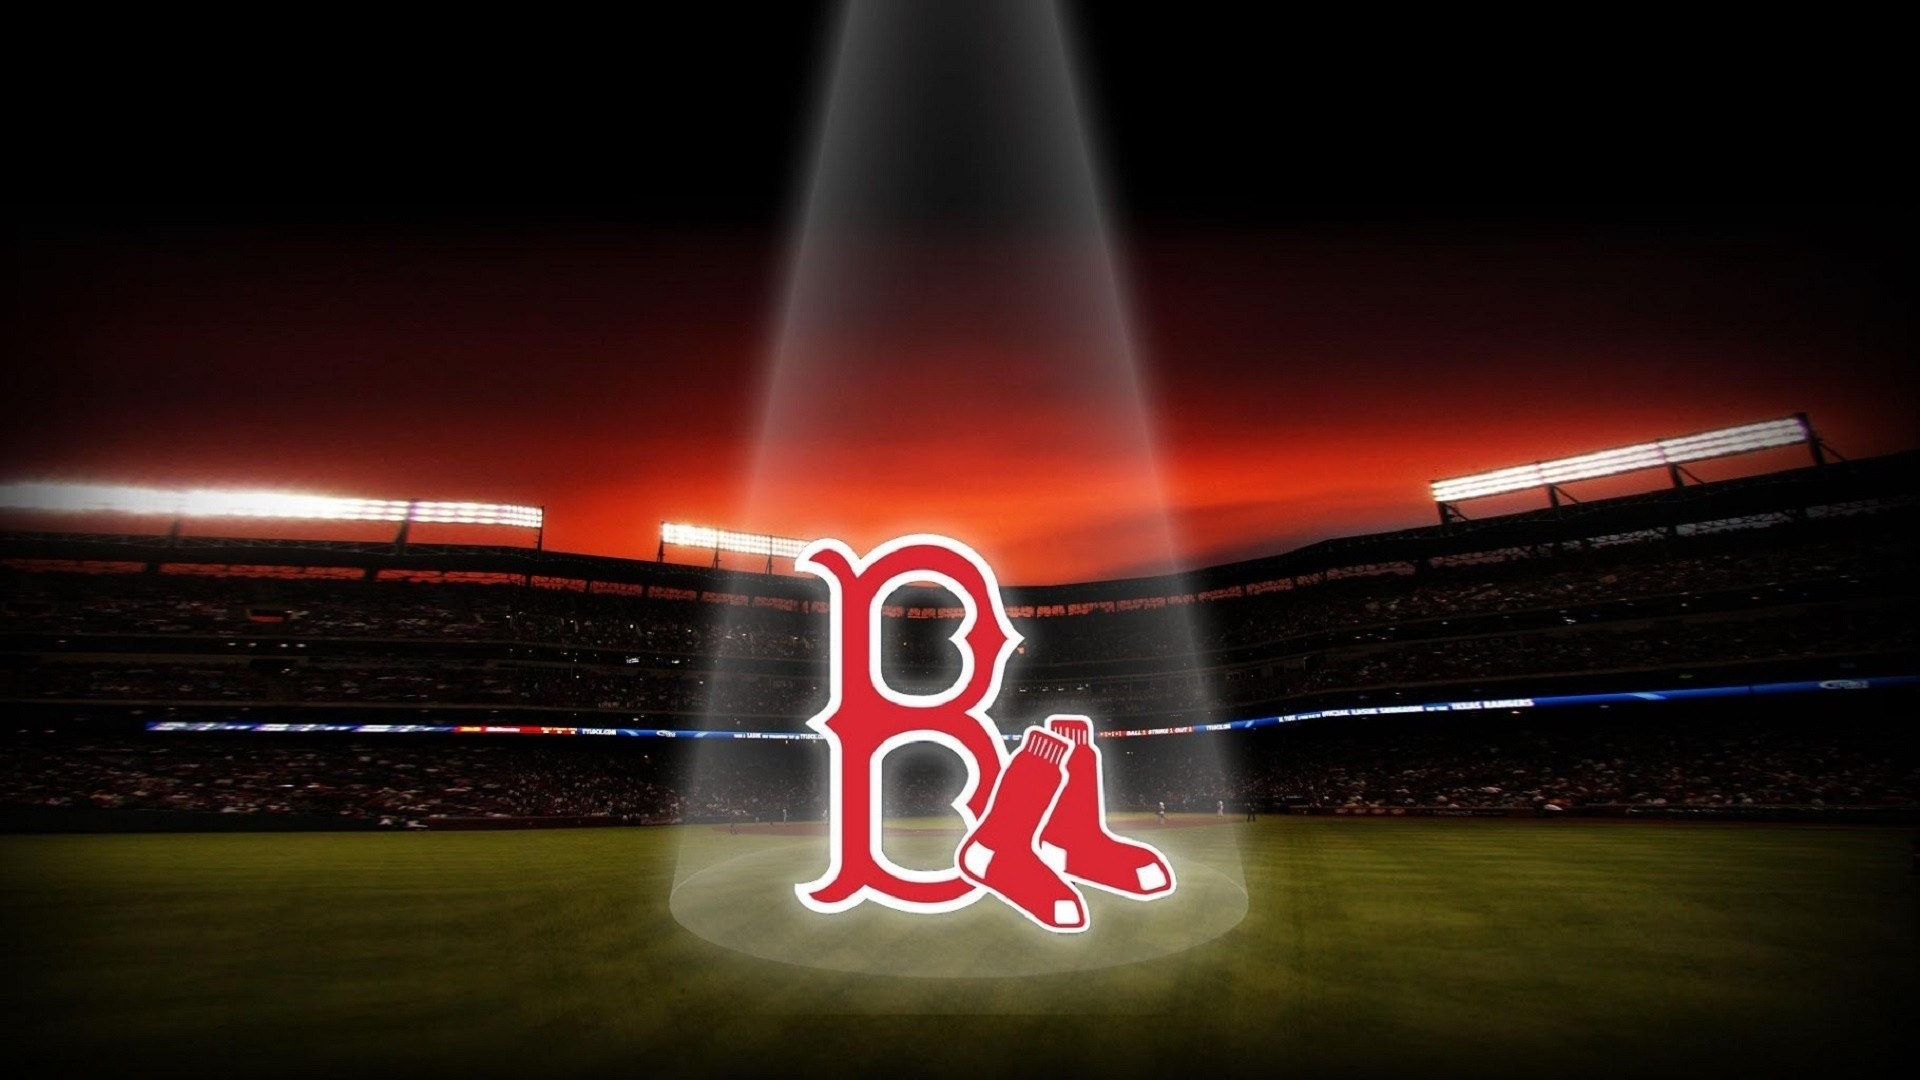 Red Sox Wallpaper and Background